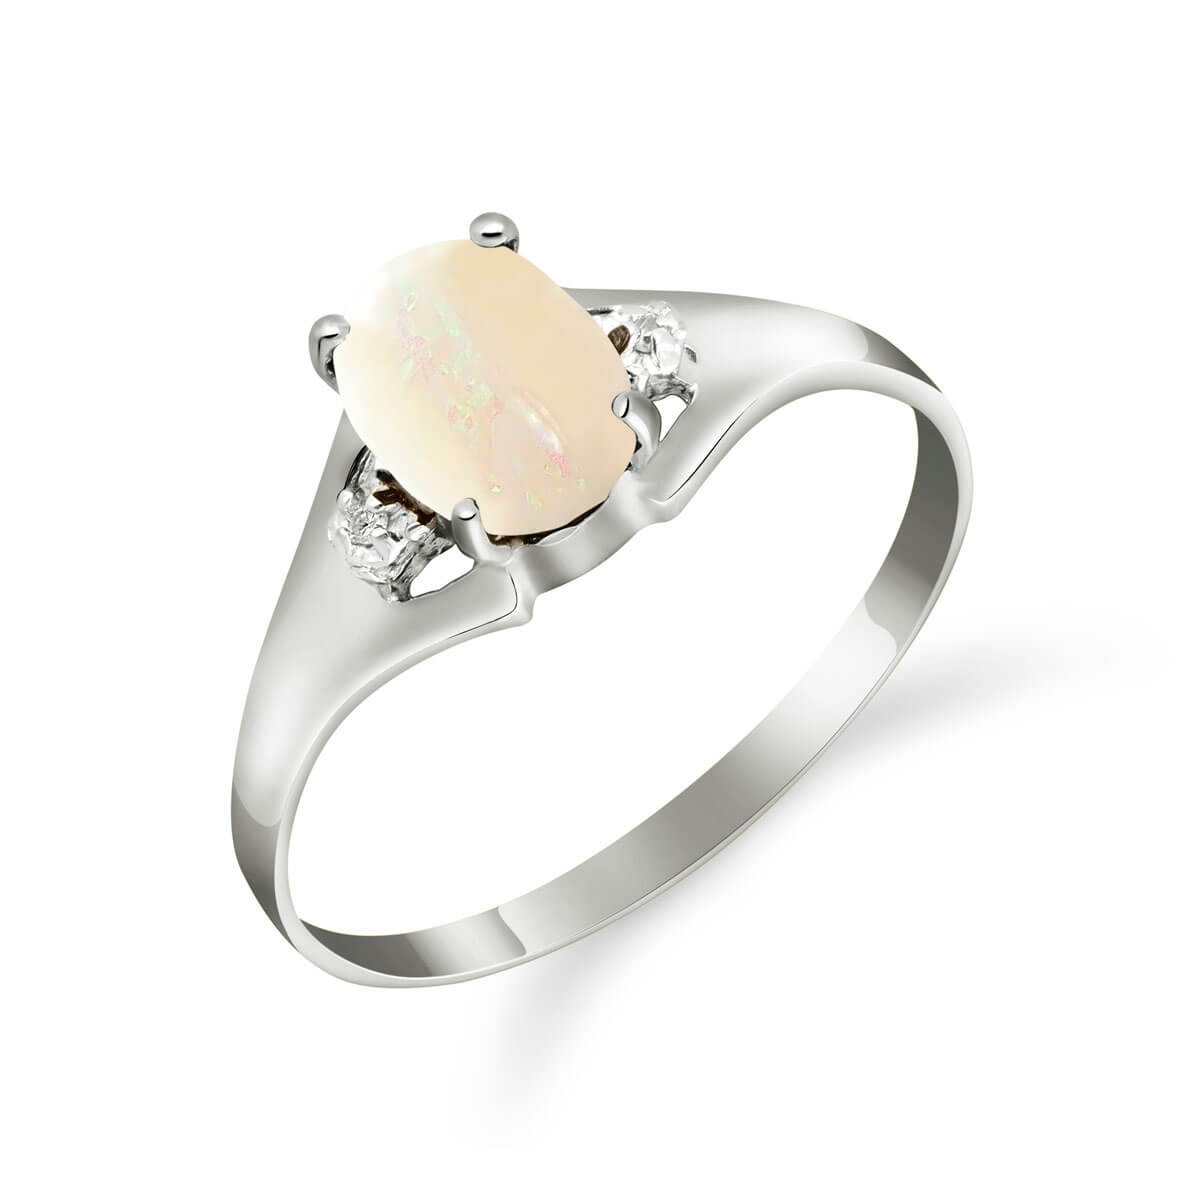 Opal & Diamond Desire Ring in 9ct White Gold